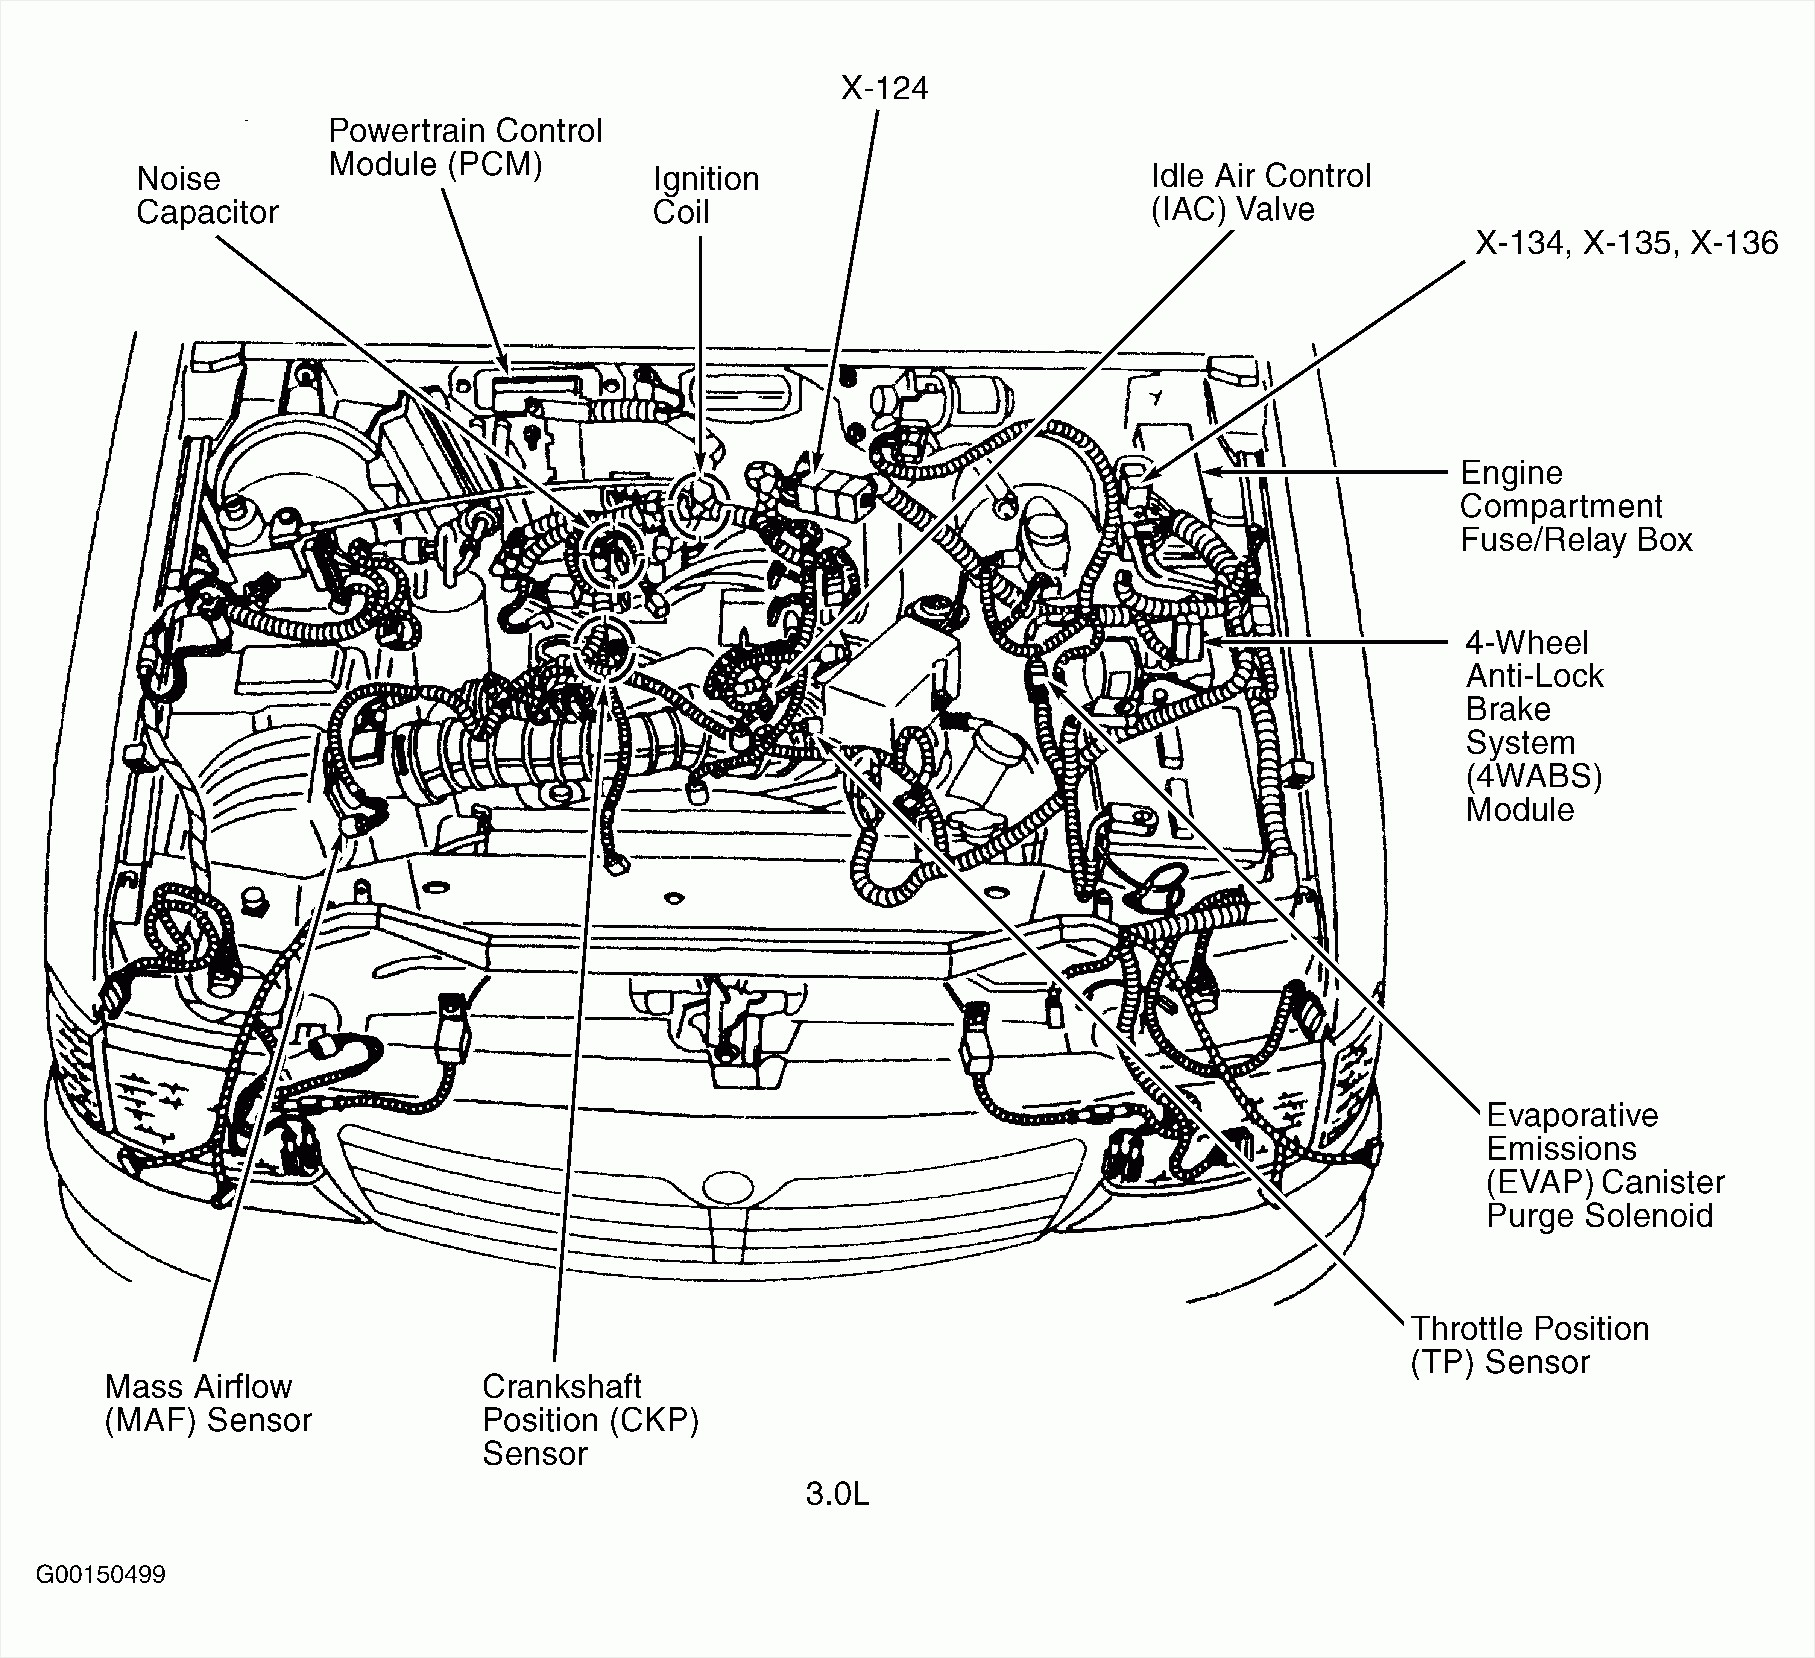 Jeep Grand Cherokee Engine Diagram Trusted Wiring Central Locking 2004 Residential Electrical Shift Solenoid